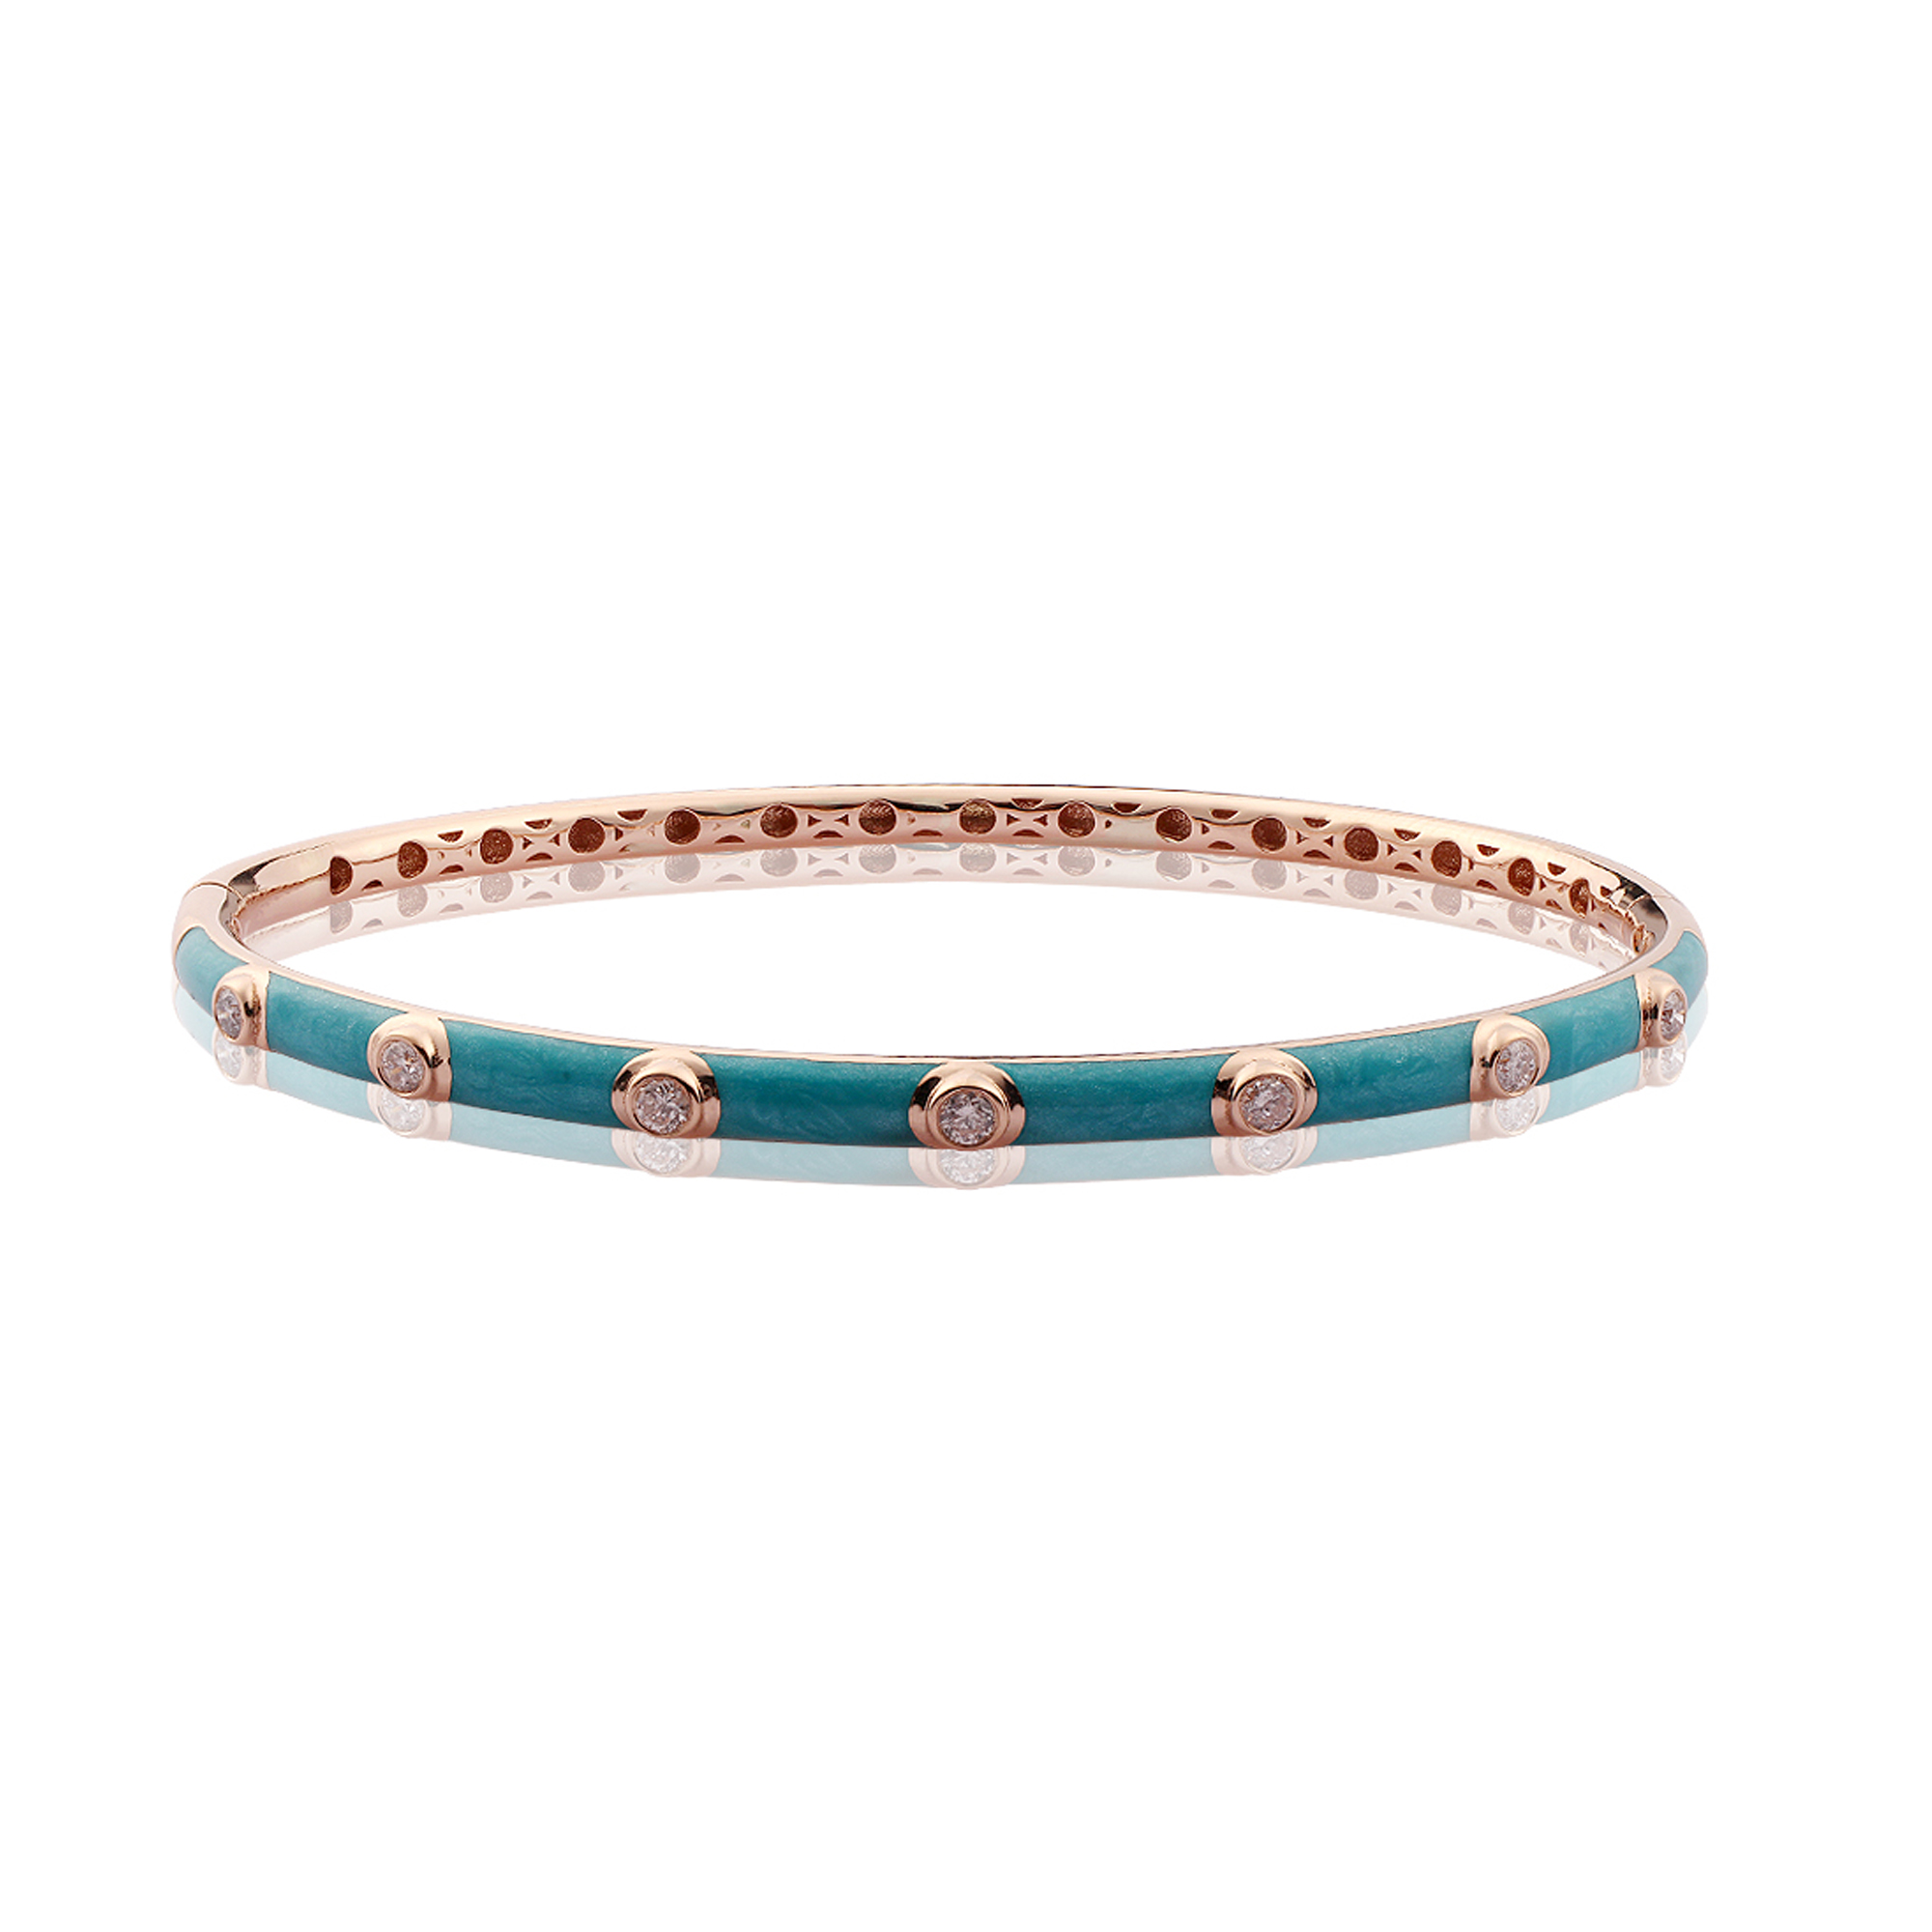 Cloisonné Collection Bracelet MN107b-10